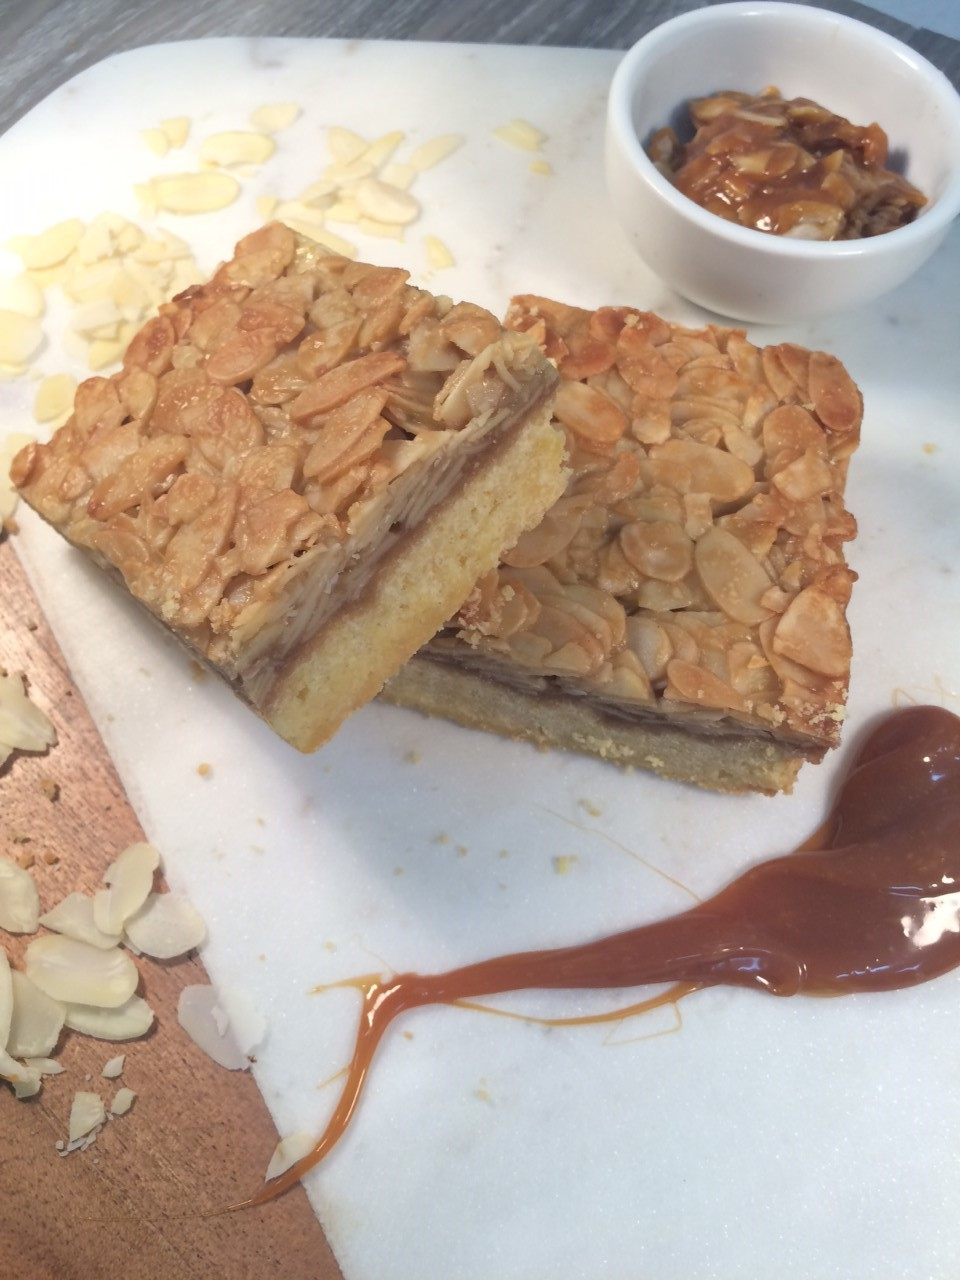 Toffee Almond Slice  Retail- Twin Pack  Cafe/Deli- Wholesale size 12pcs